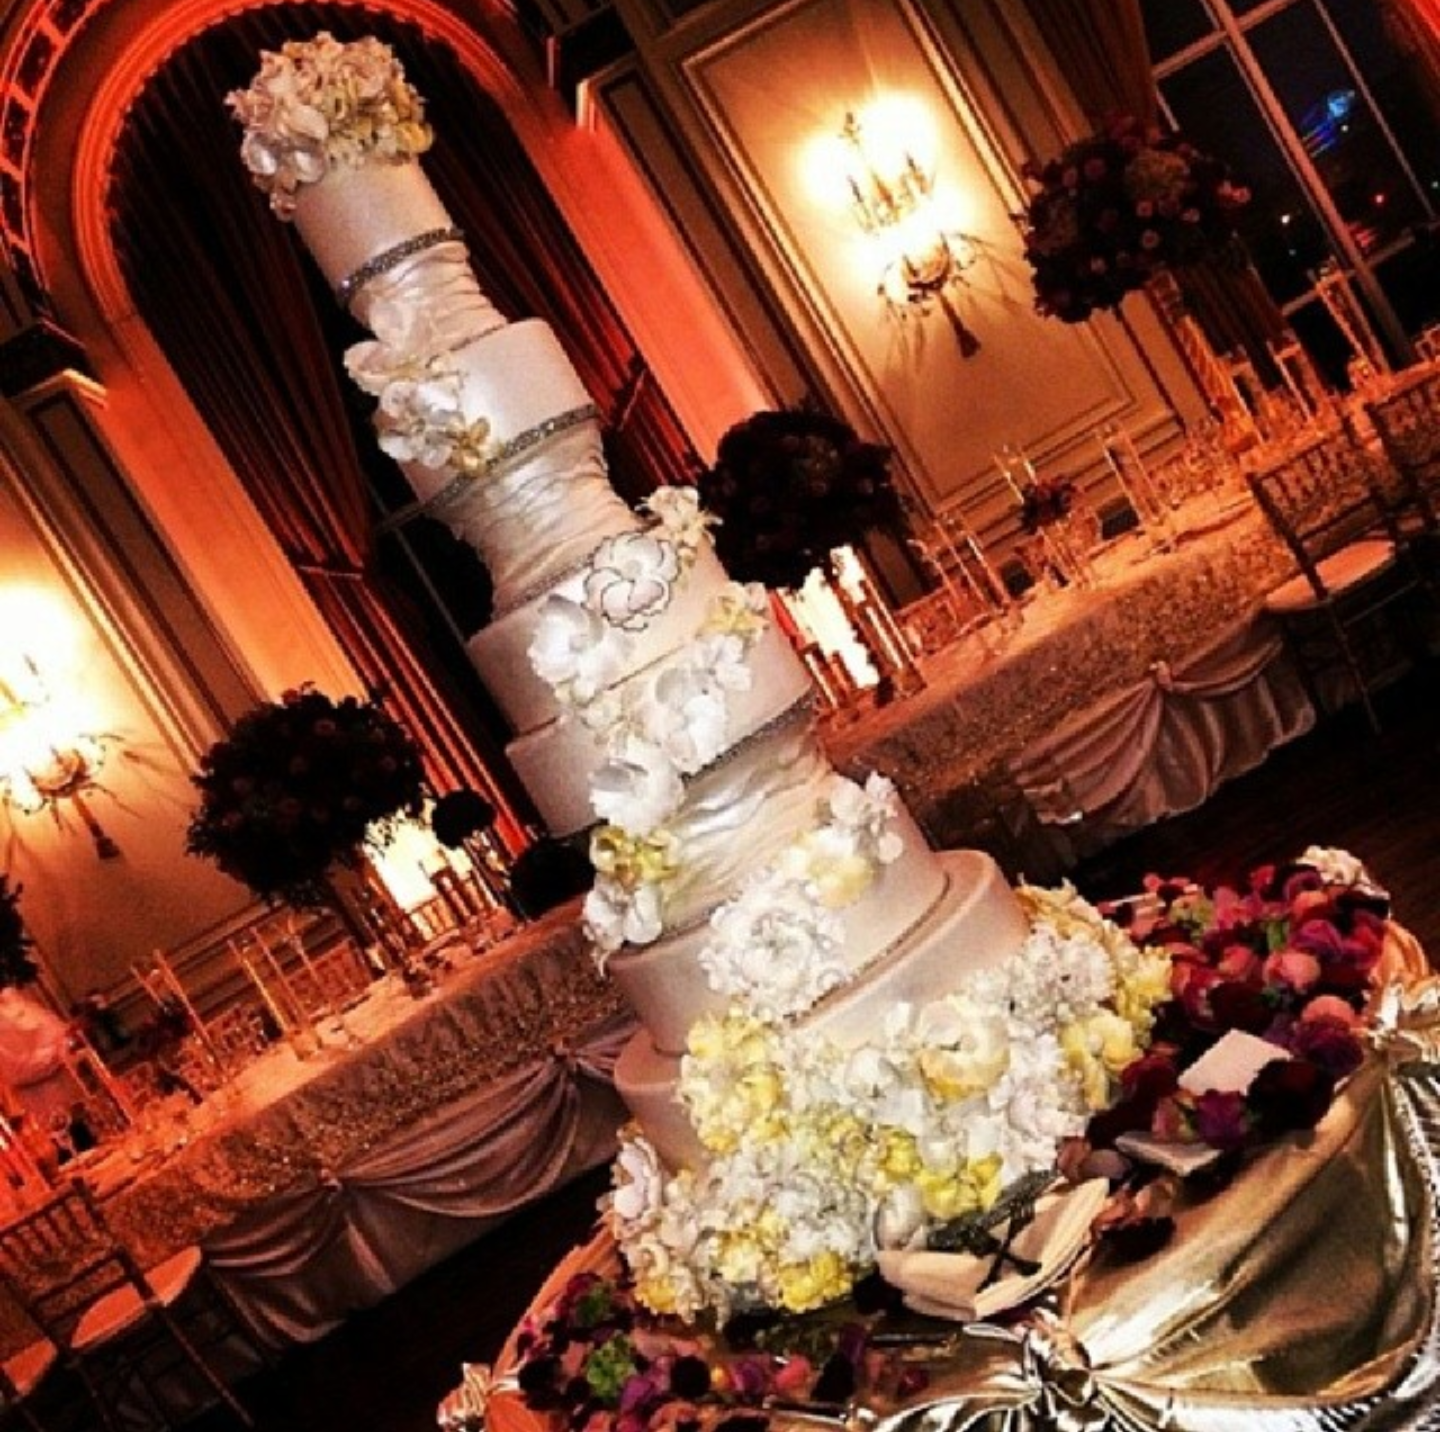 Silver wedding cake with yellow and white sugar flowers